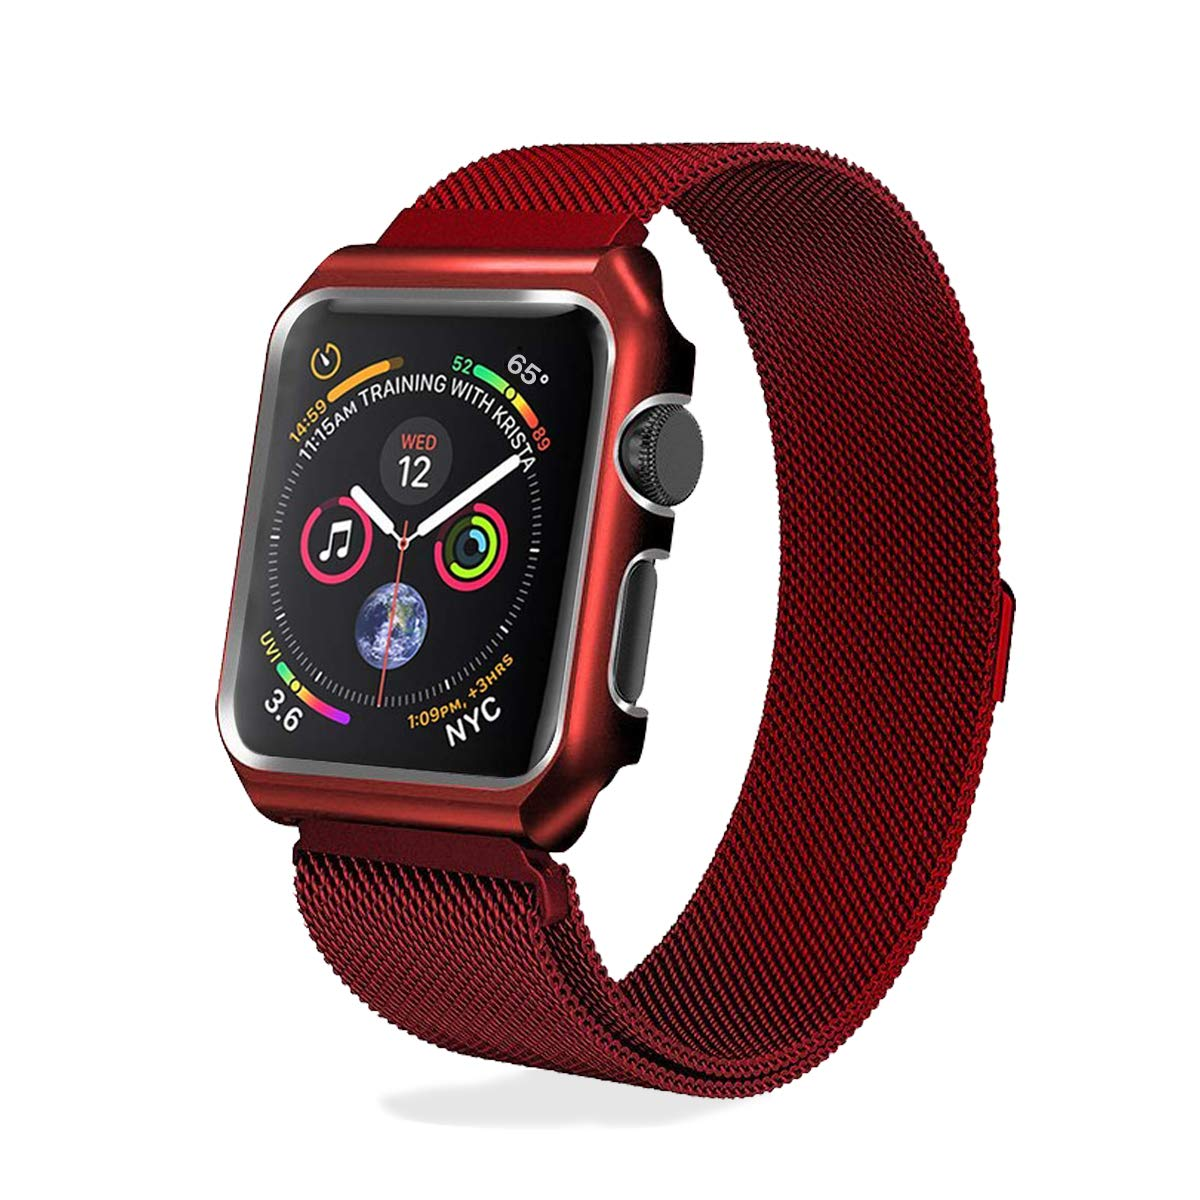 AHXLL Compatible for Apple Watch Band 44mm,Mesh Milanese Loop Stainless Steel Magnetic Band Replacement iWatch + Metal Protective case for Apple Watch Series 4, Sport& Edition (Red, 44mm)